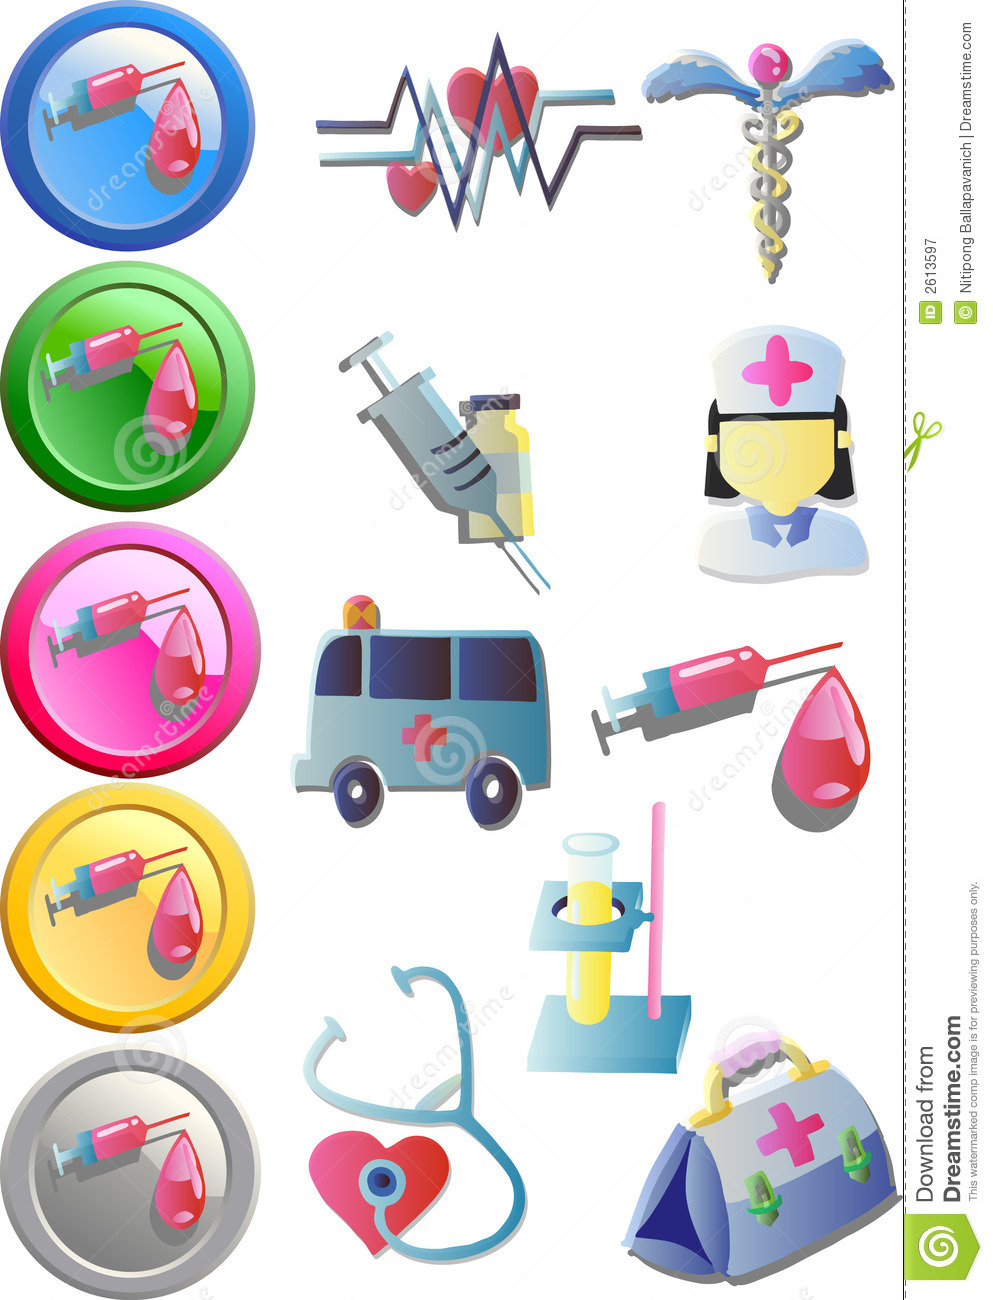 Free clipart medical images - .